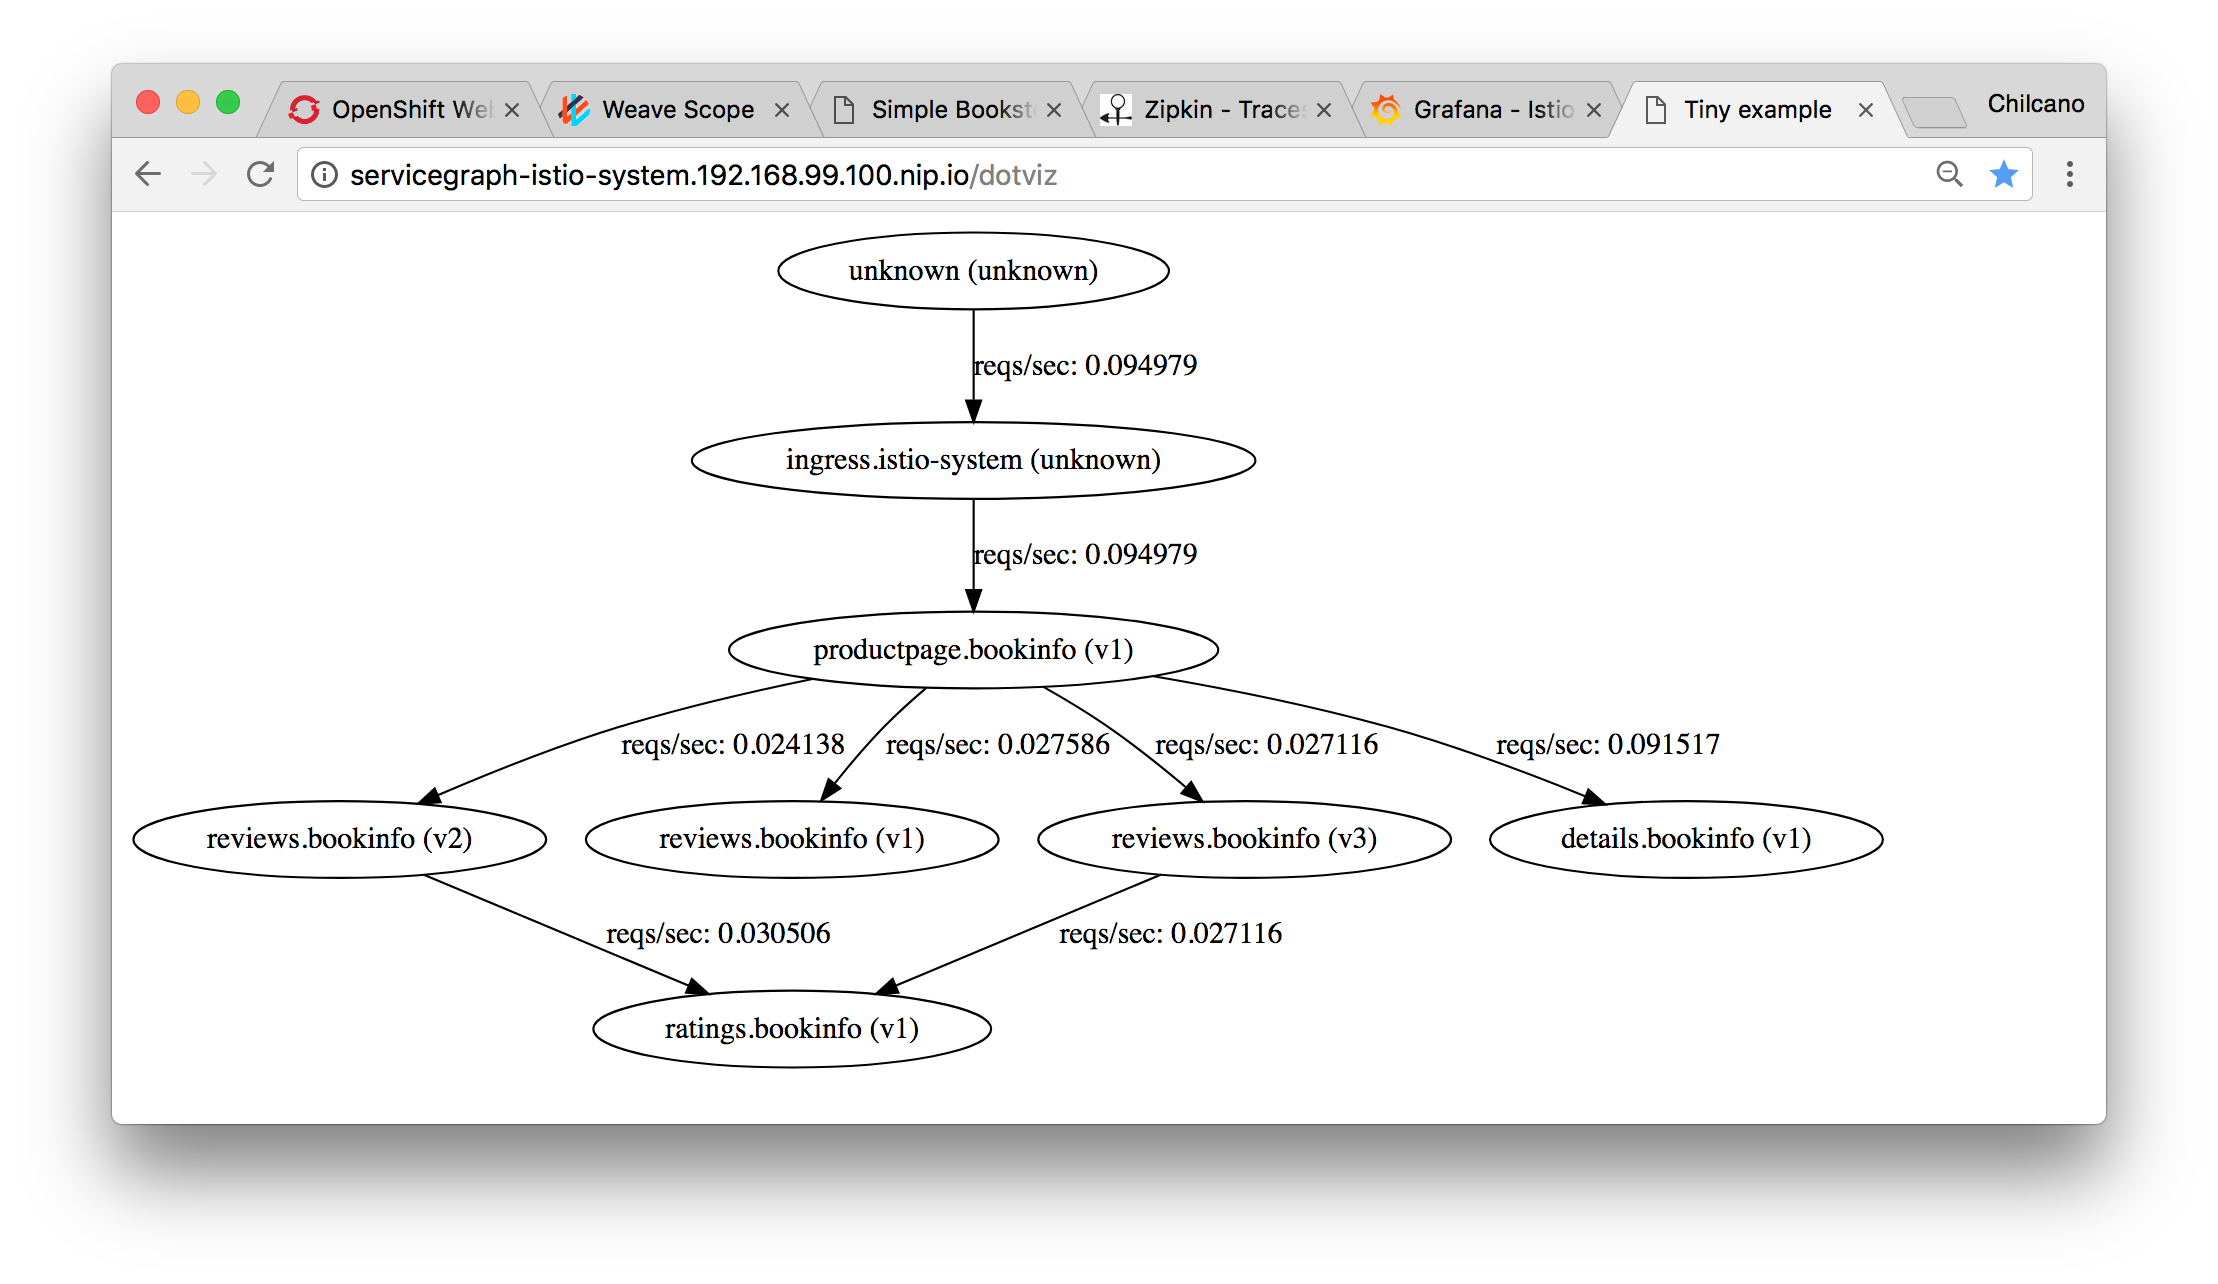 Viewing the flows with ServiceGraph